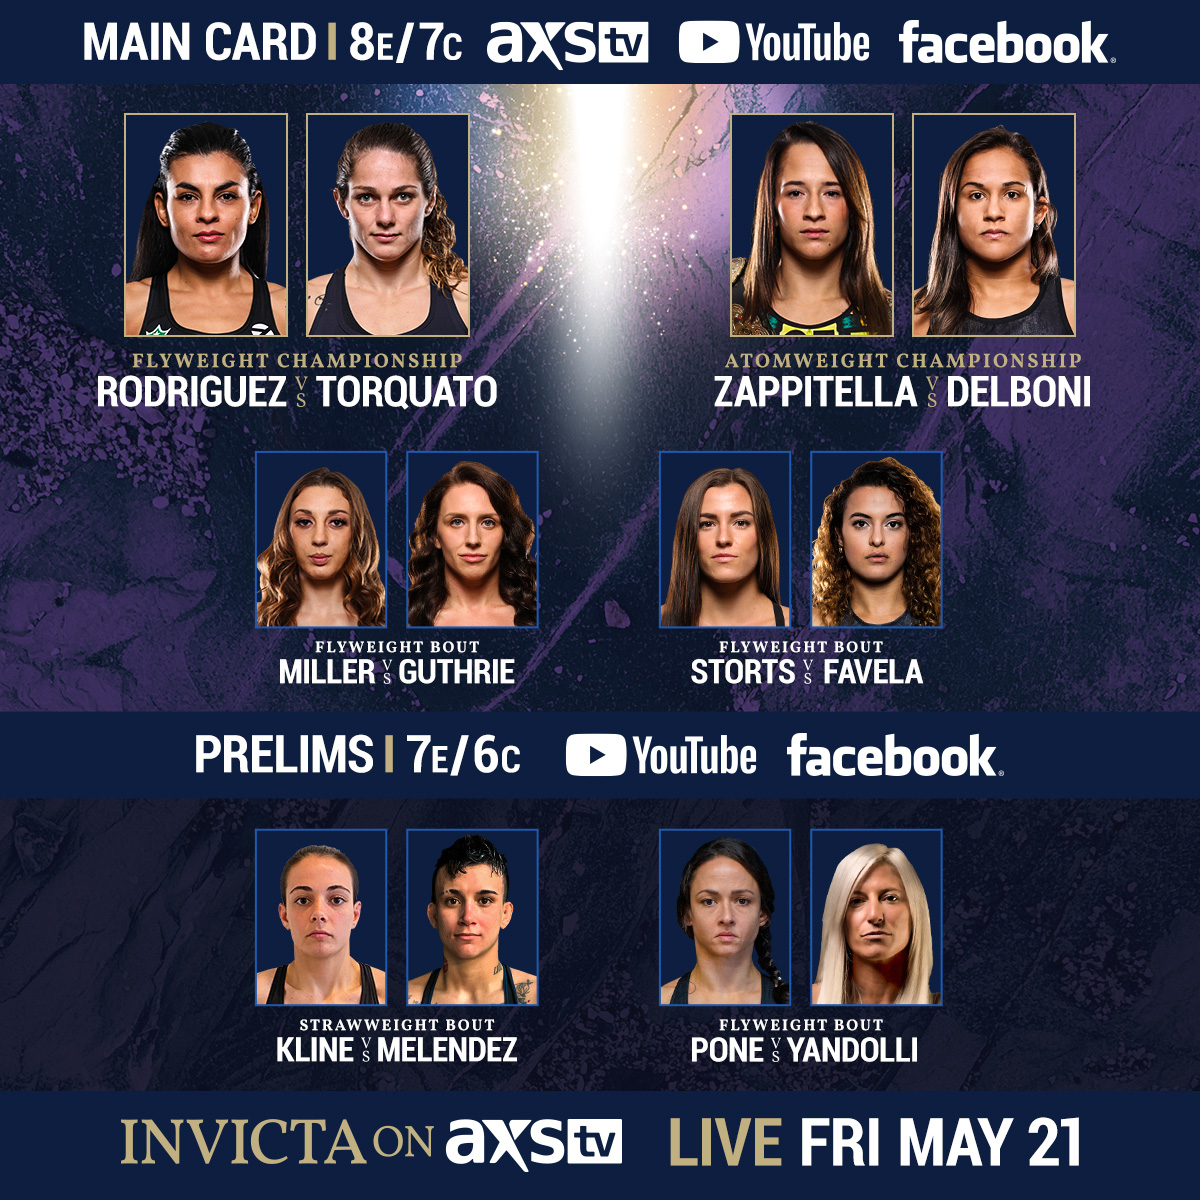 🚨 Your official fight card for #InvictaOnAXS!   #InvictaOnAXS is on Friday, May 21 | Main Card LIVE on @AXSTV at 8/7c | Prelims at 7/6c | How to Watch: https://t.co/g5gSRP9YN5 https://t.co/3706iTMlvt